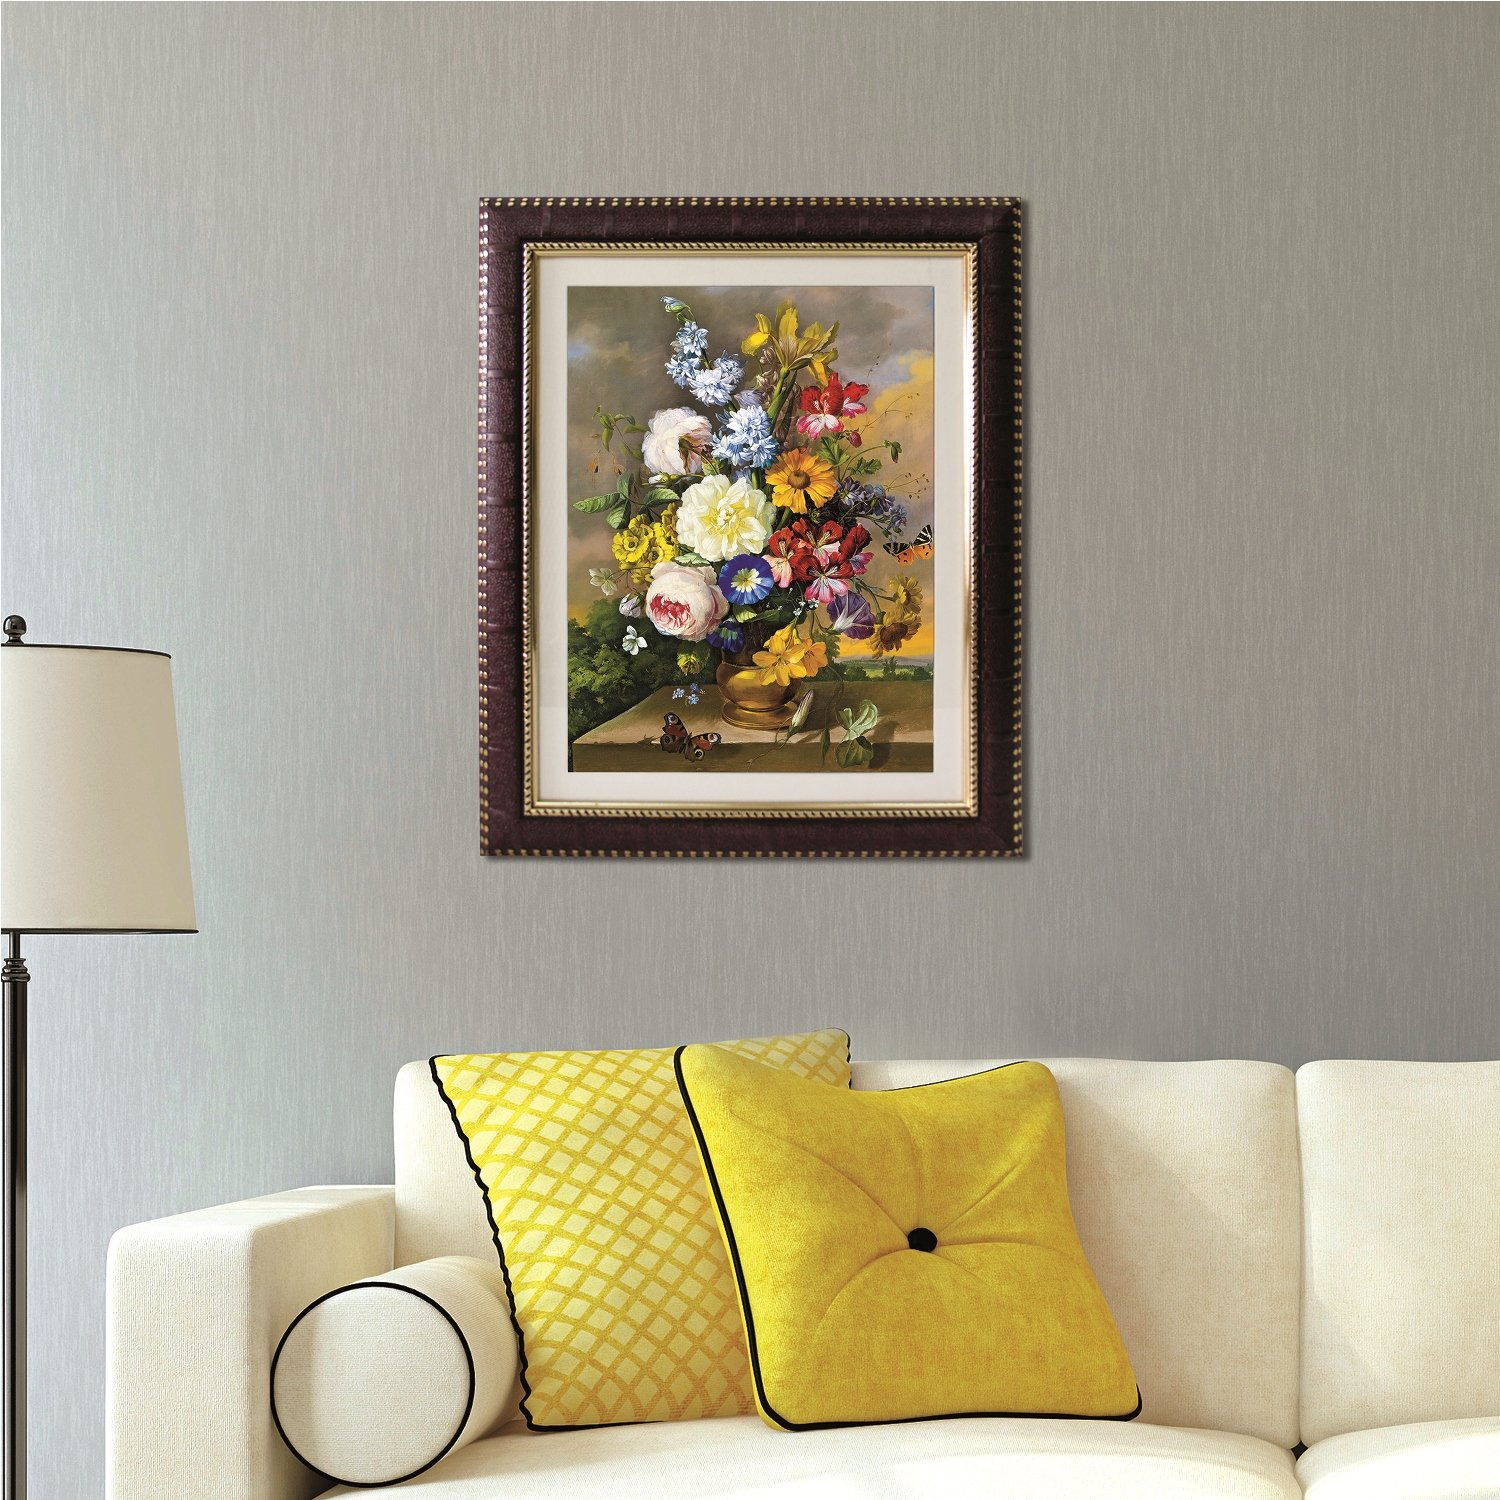 Art Tantra Vintage Flower Painting Ready To Hang With Decorative